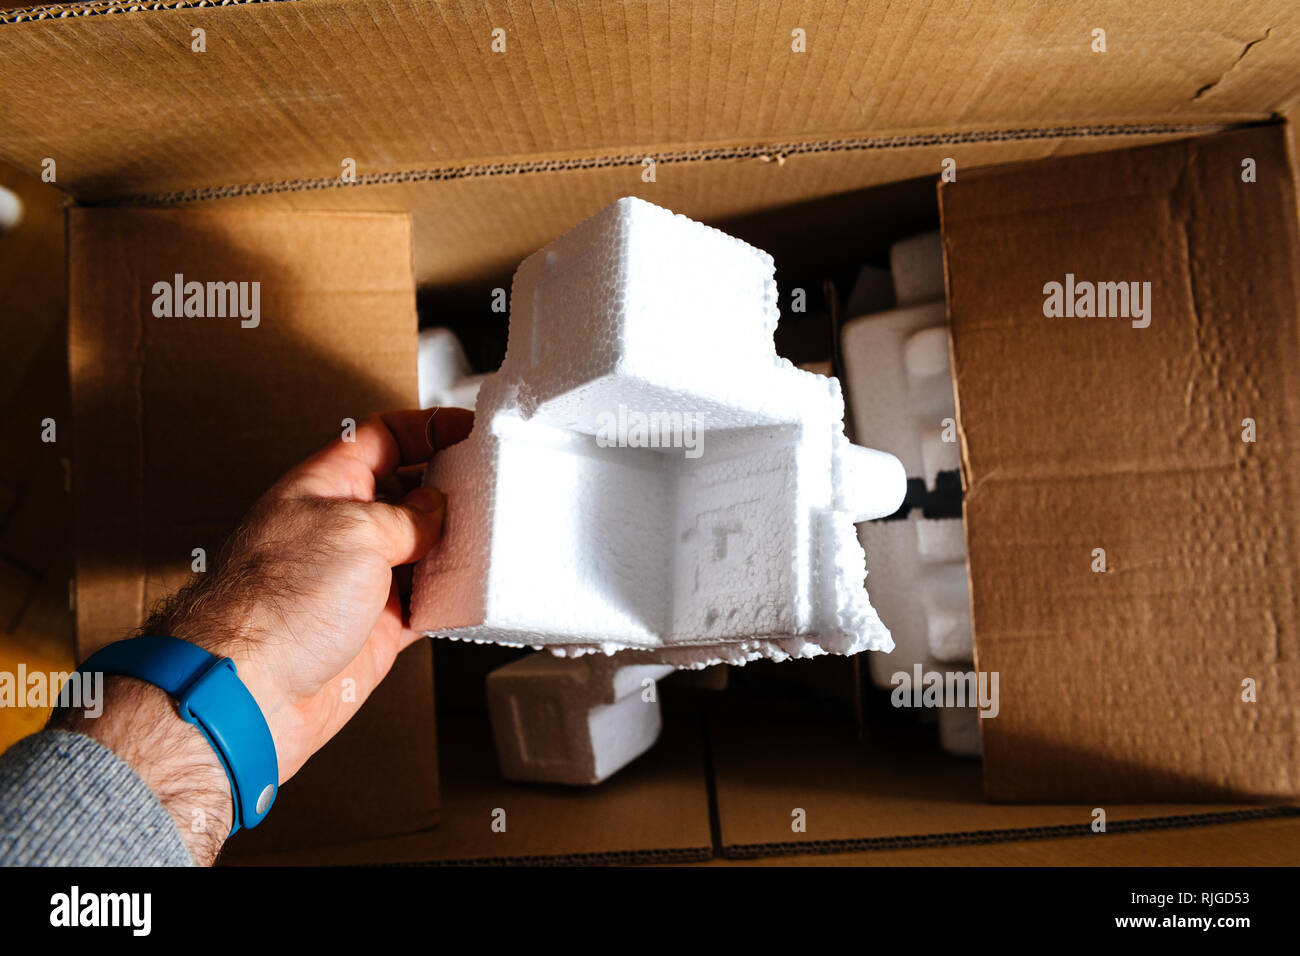 Man holding polystyrene packaging detail of a cardboard box during unboxing Stock Photo